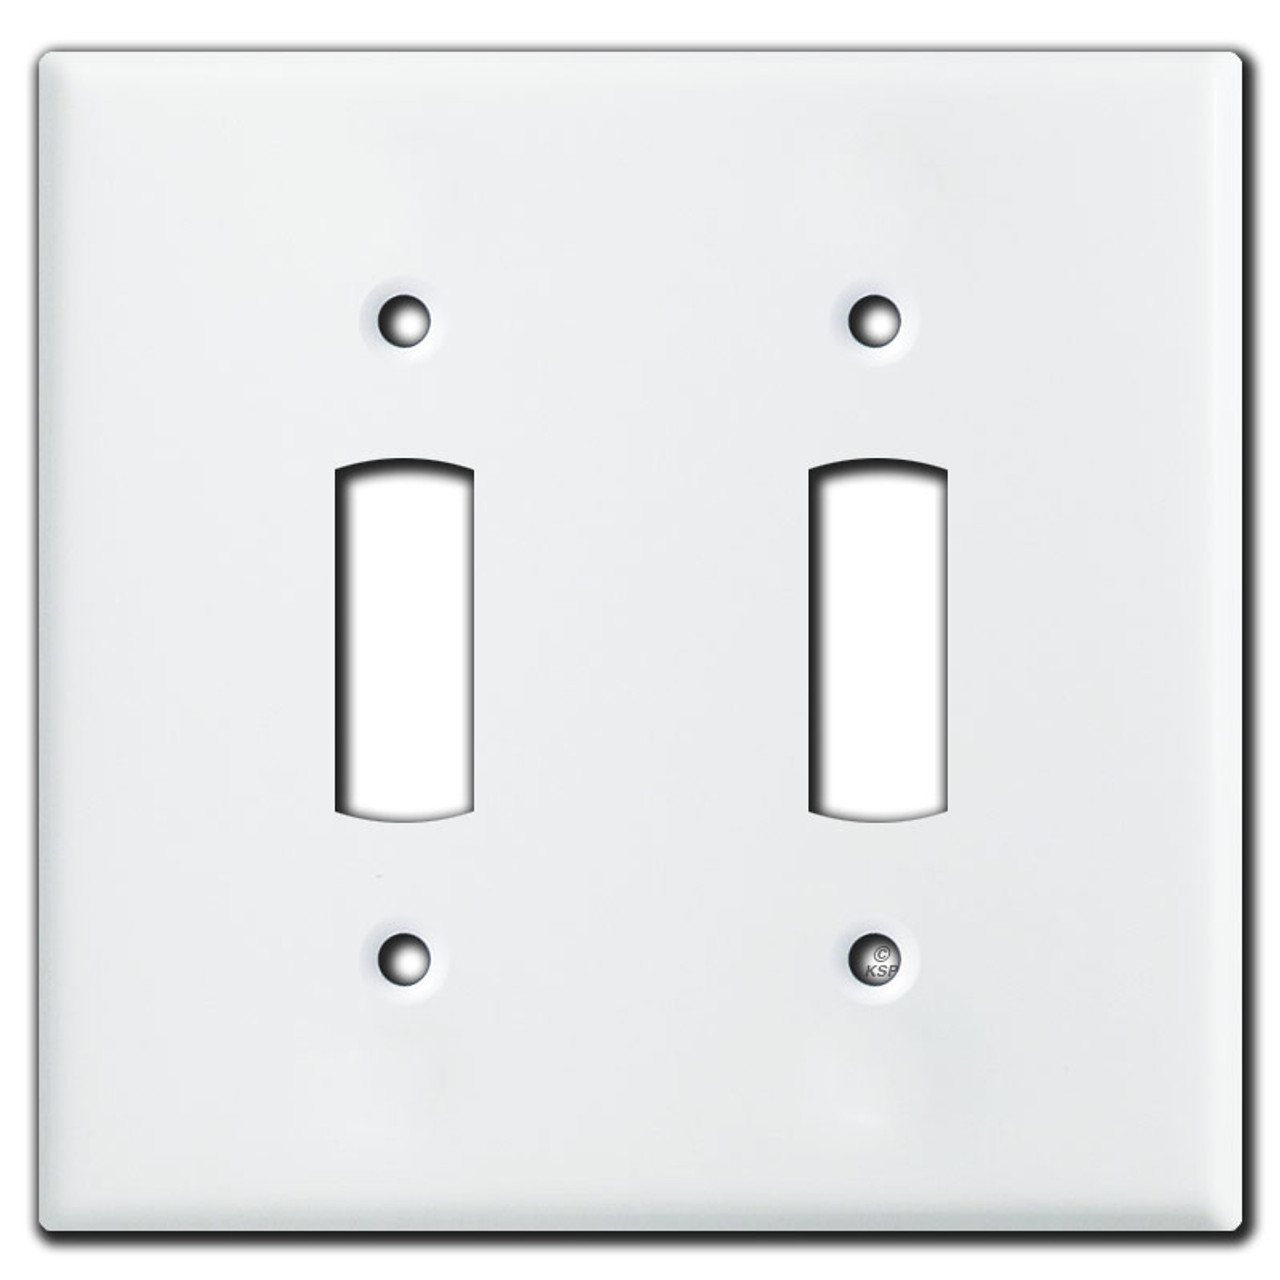 2 Fat Toggle Light Switch Cover For Vintage Wide Toggles